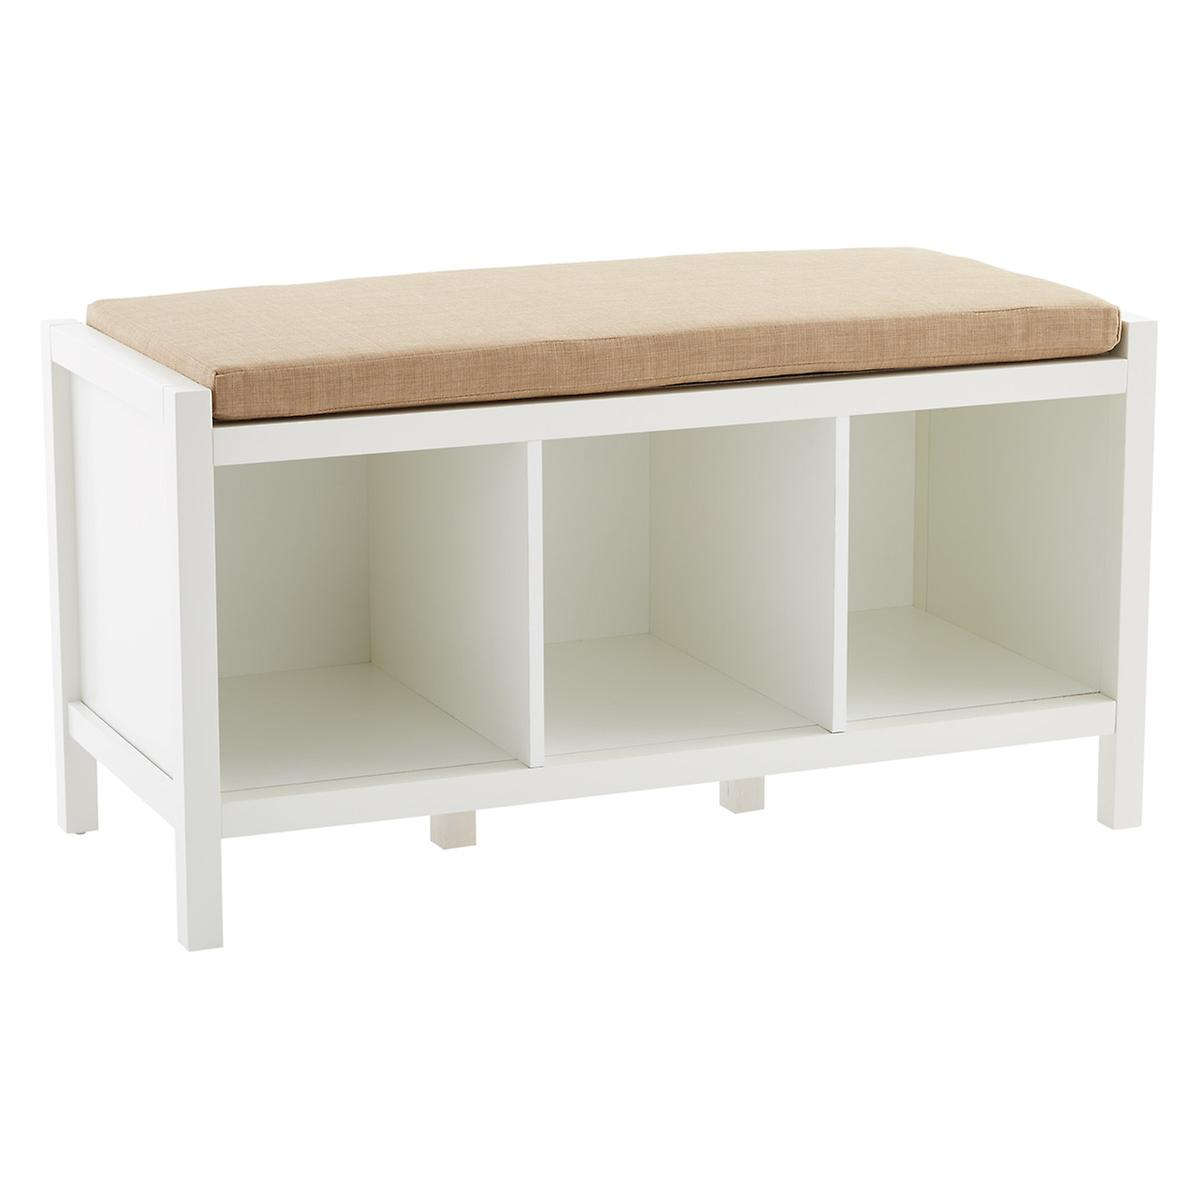 Entryway Storage Bench Storage Bench Division Storage Bench The Container Store